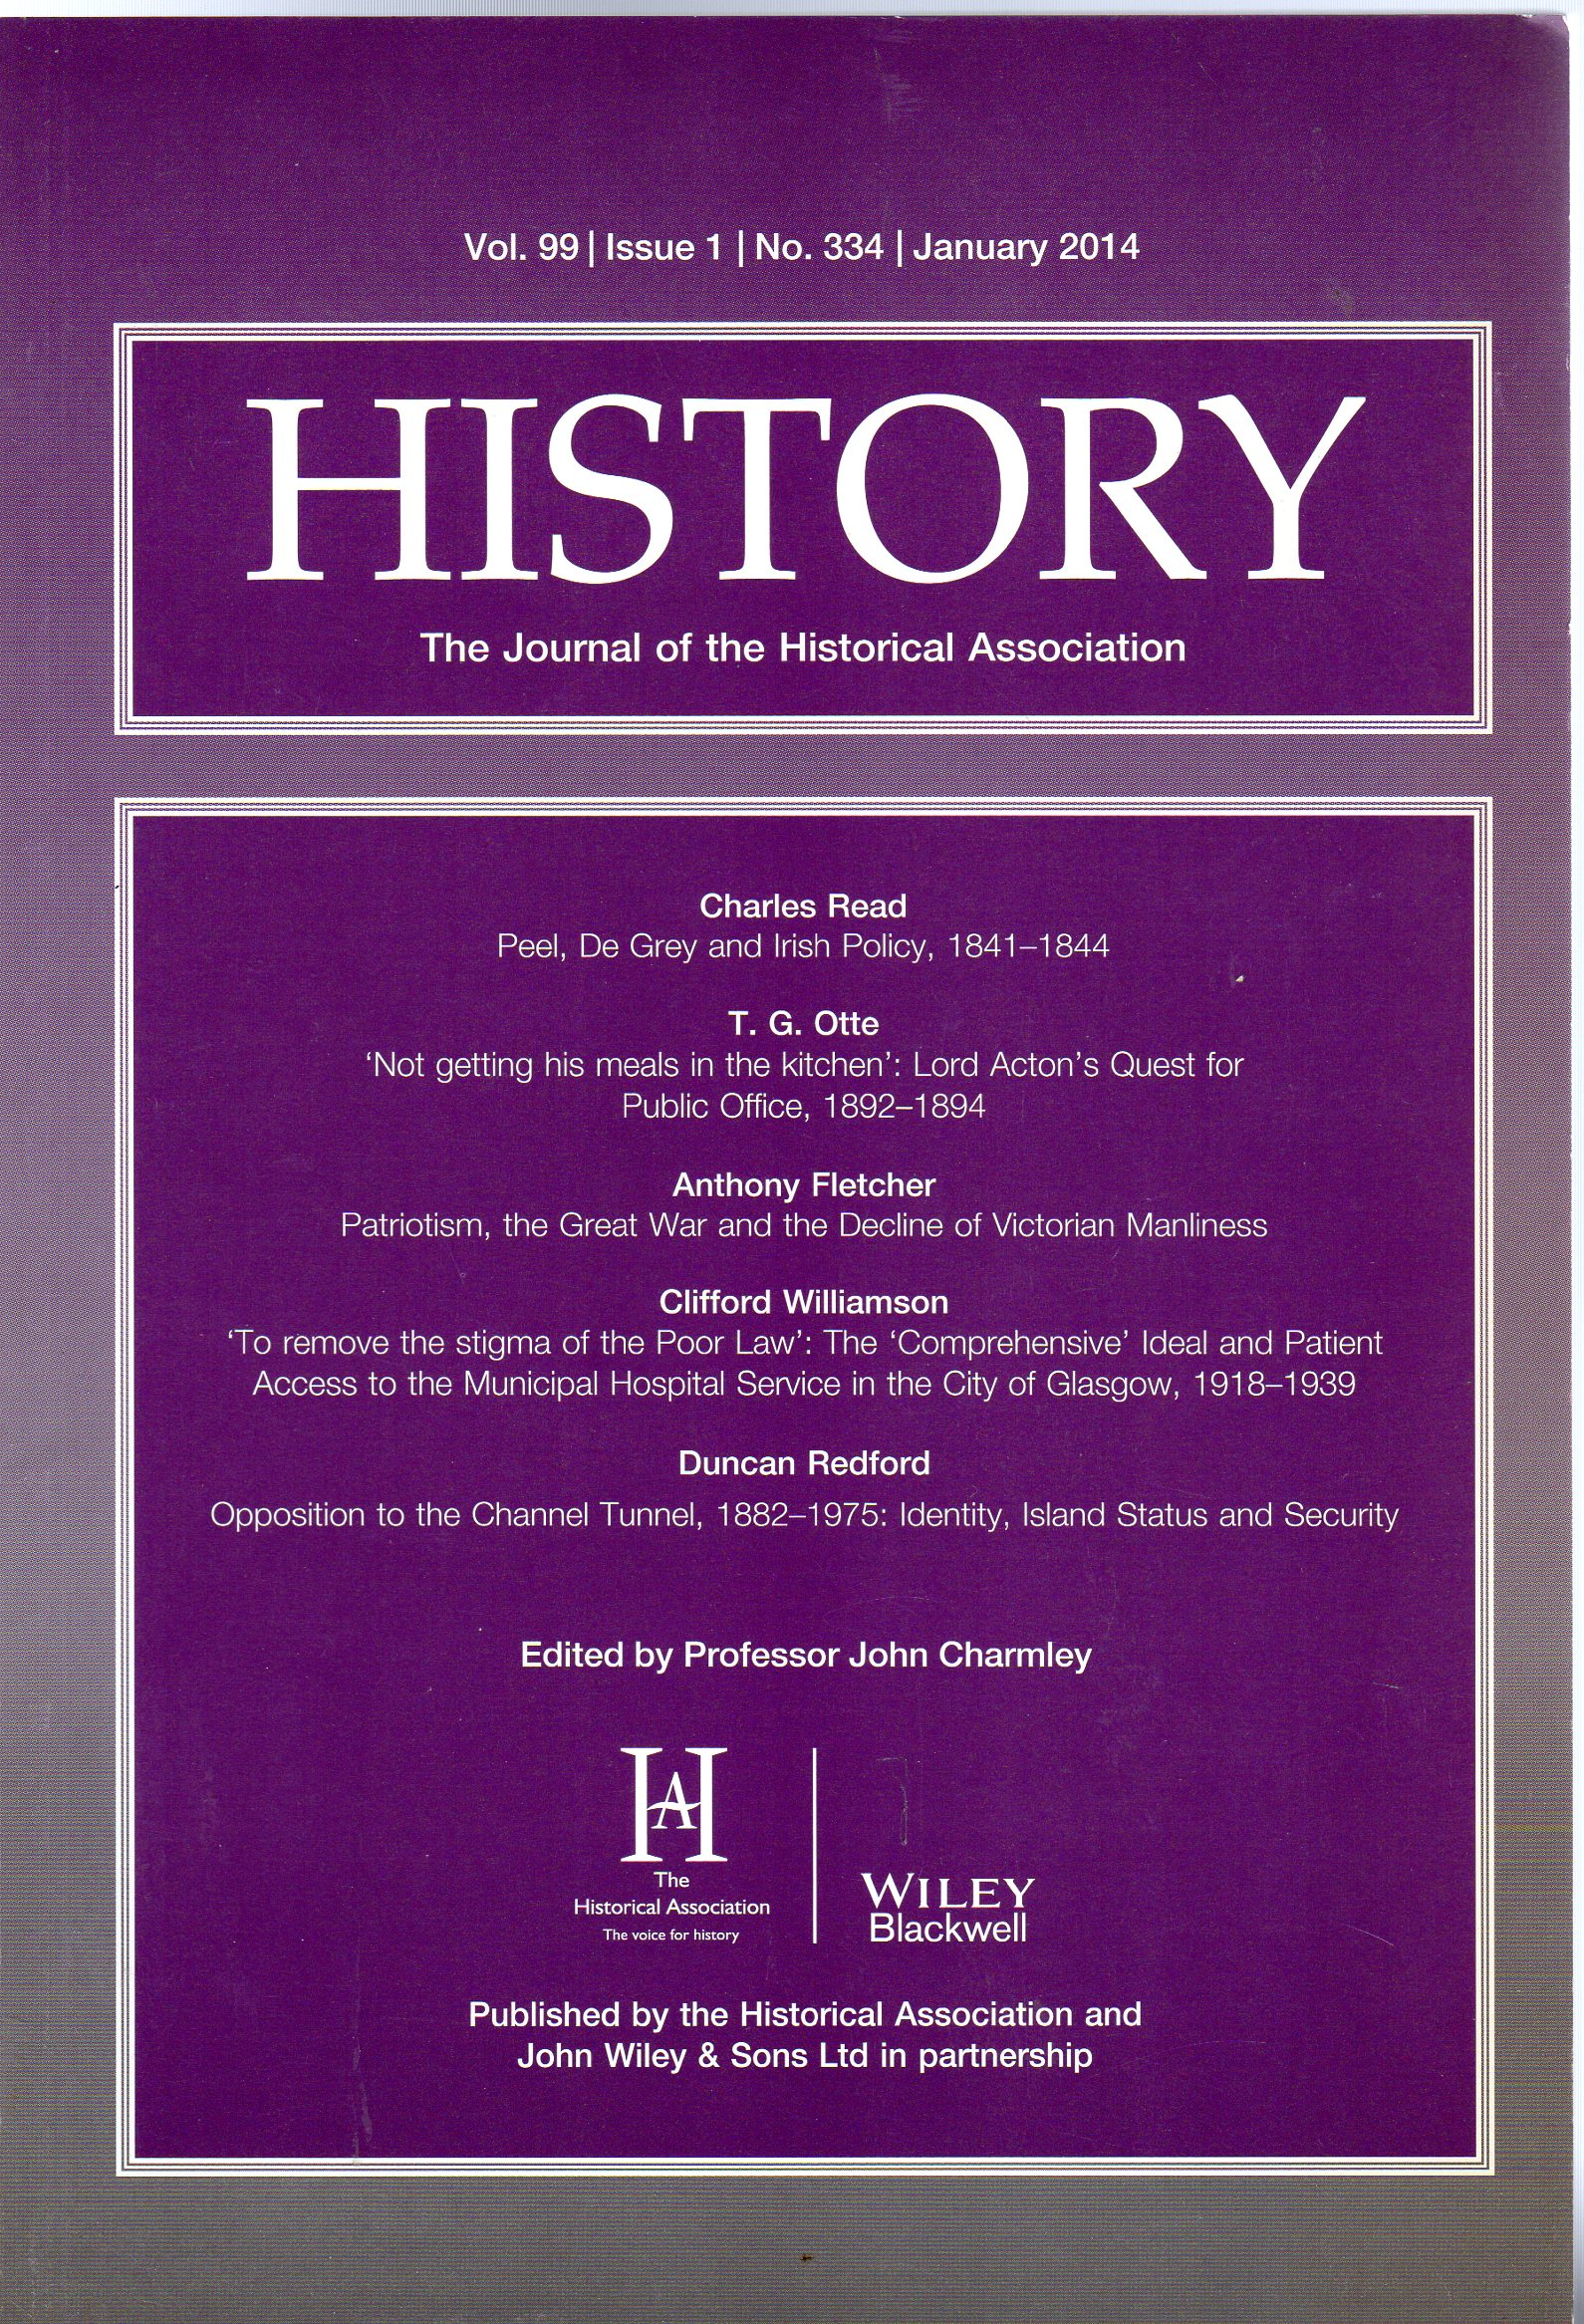 Image for History : The Journal of the Historical Association - Volume 99 Issue 1 No 334 January 2014